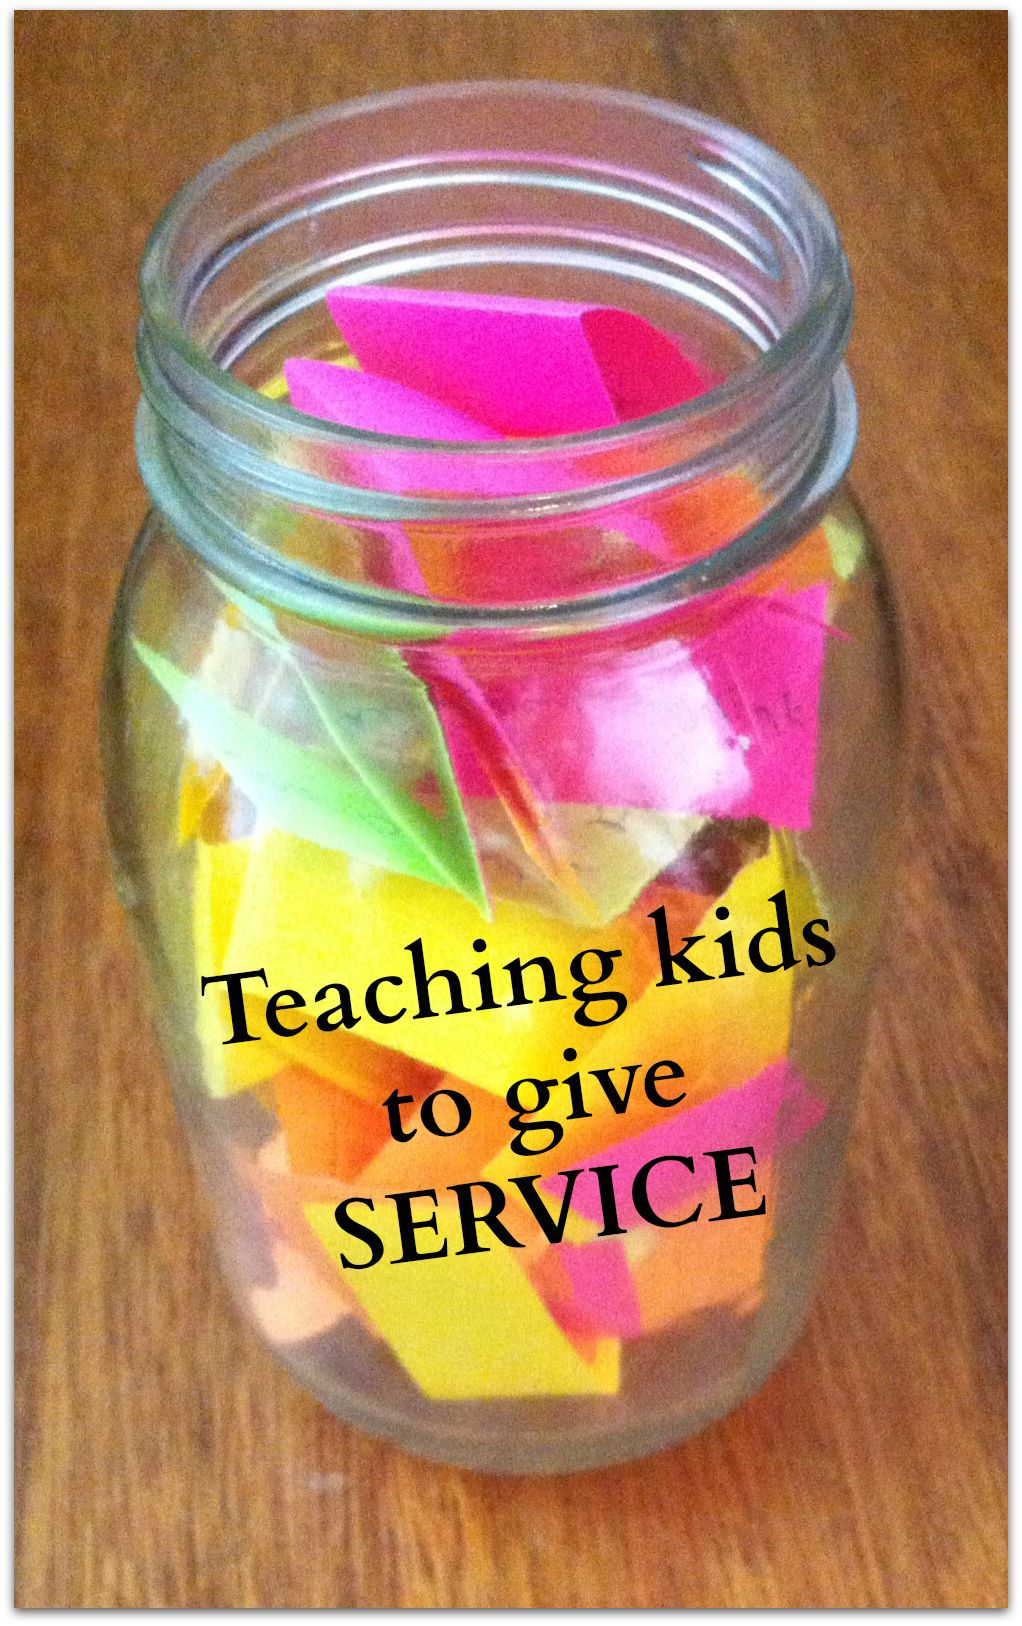 FHE: Teaching Kids to Give Service